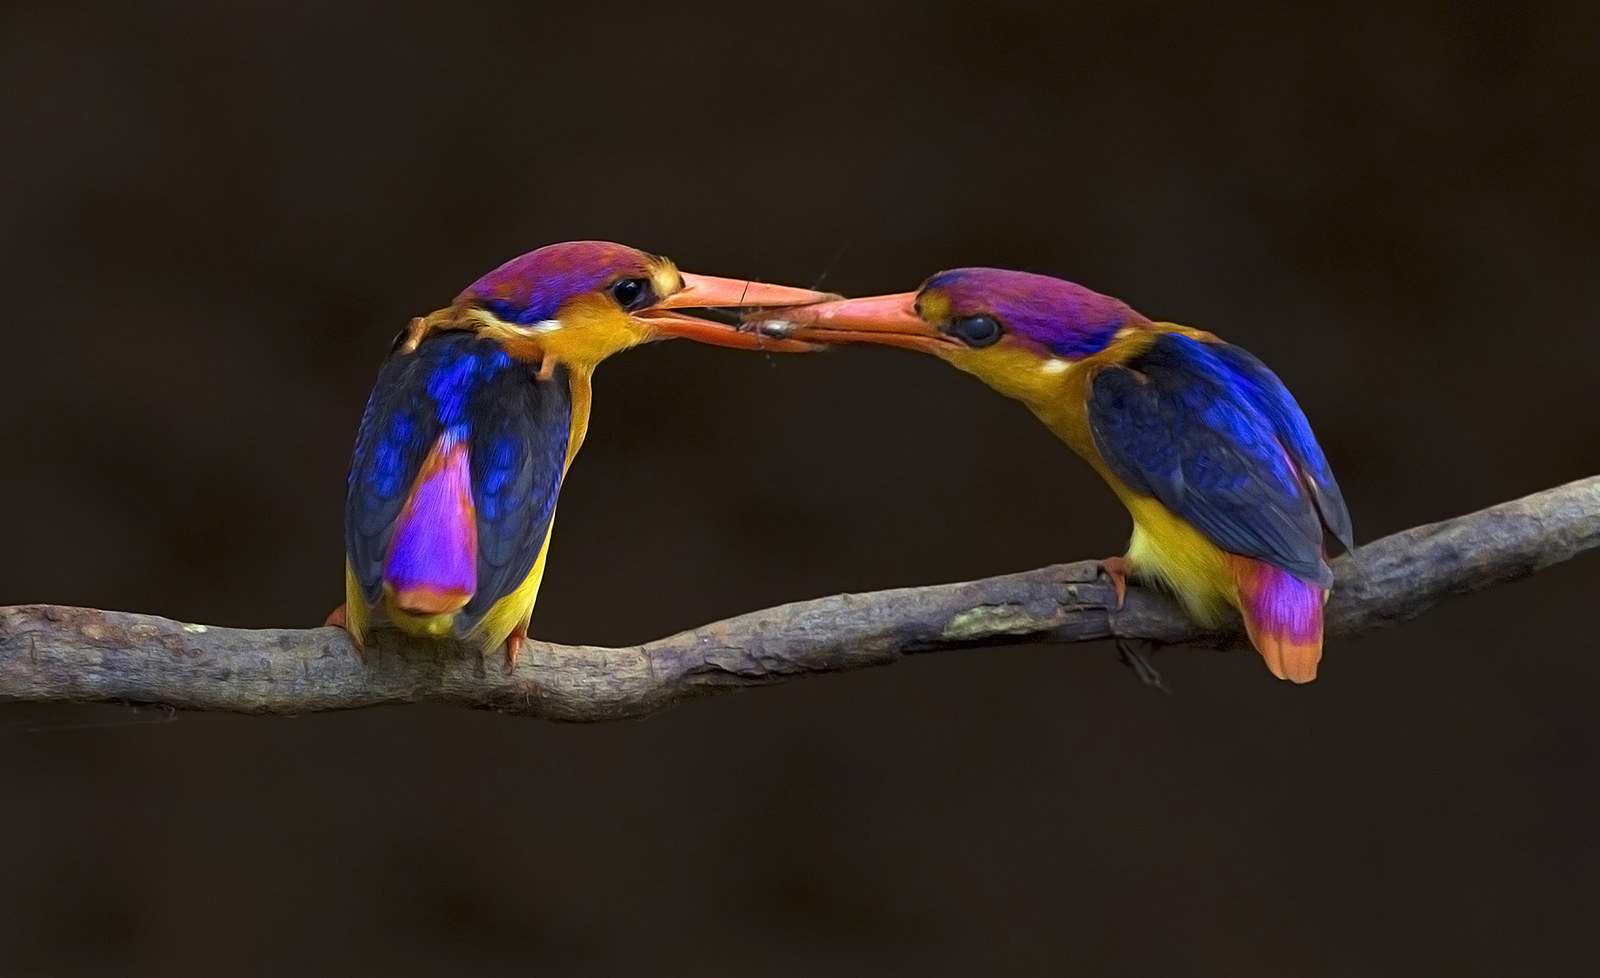 """Oriental Dwarf Kingfishers"", by Aditya Salekar, from India"